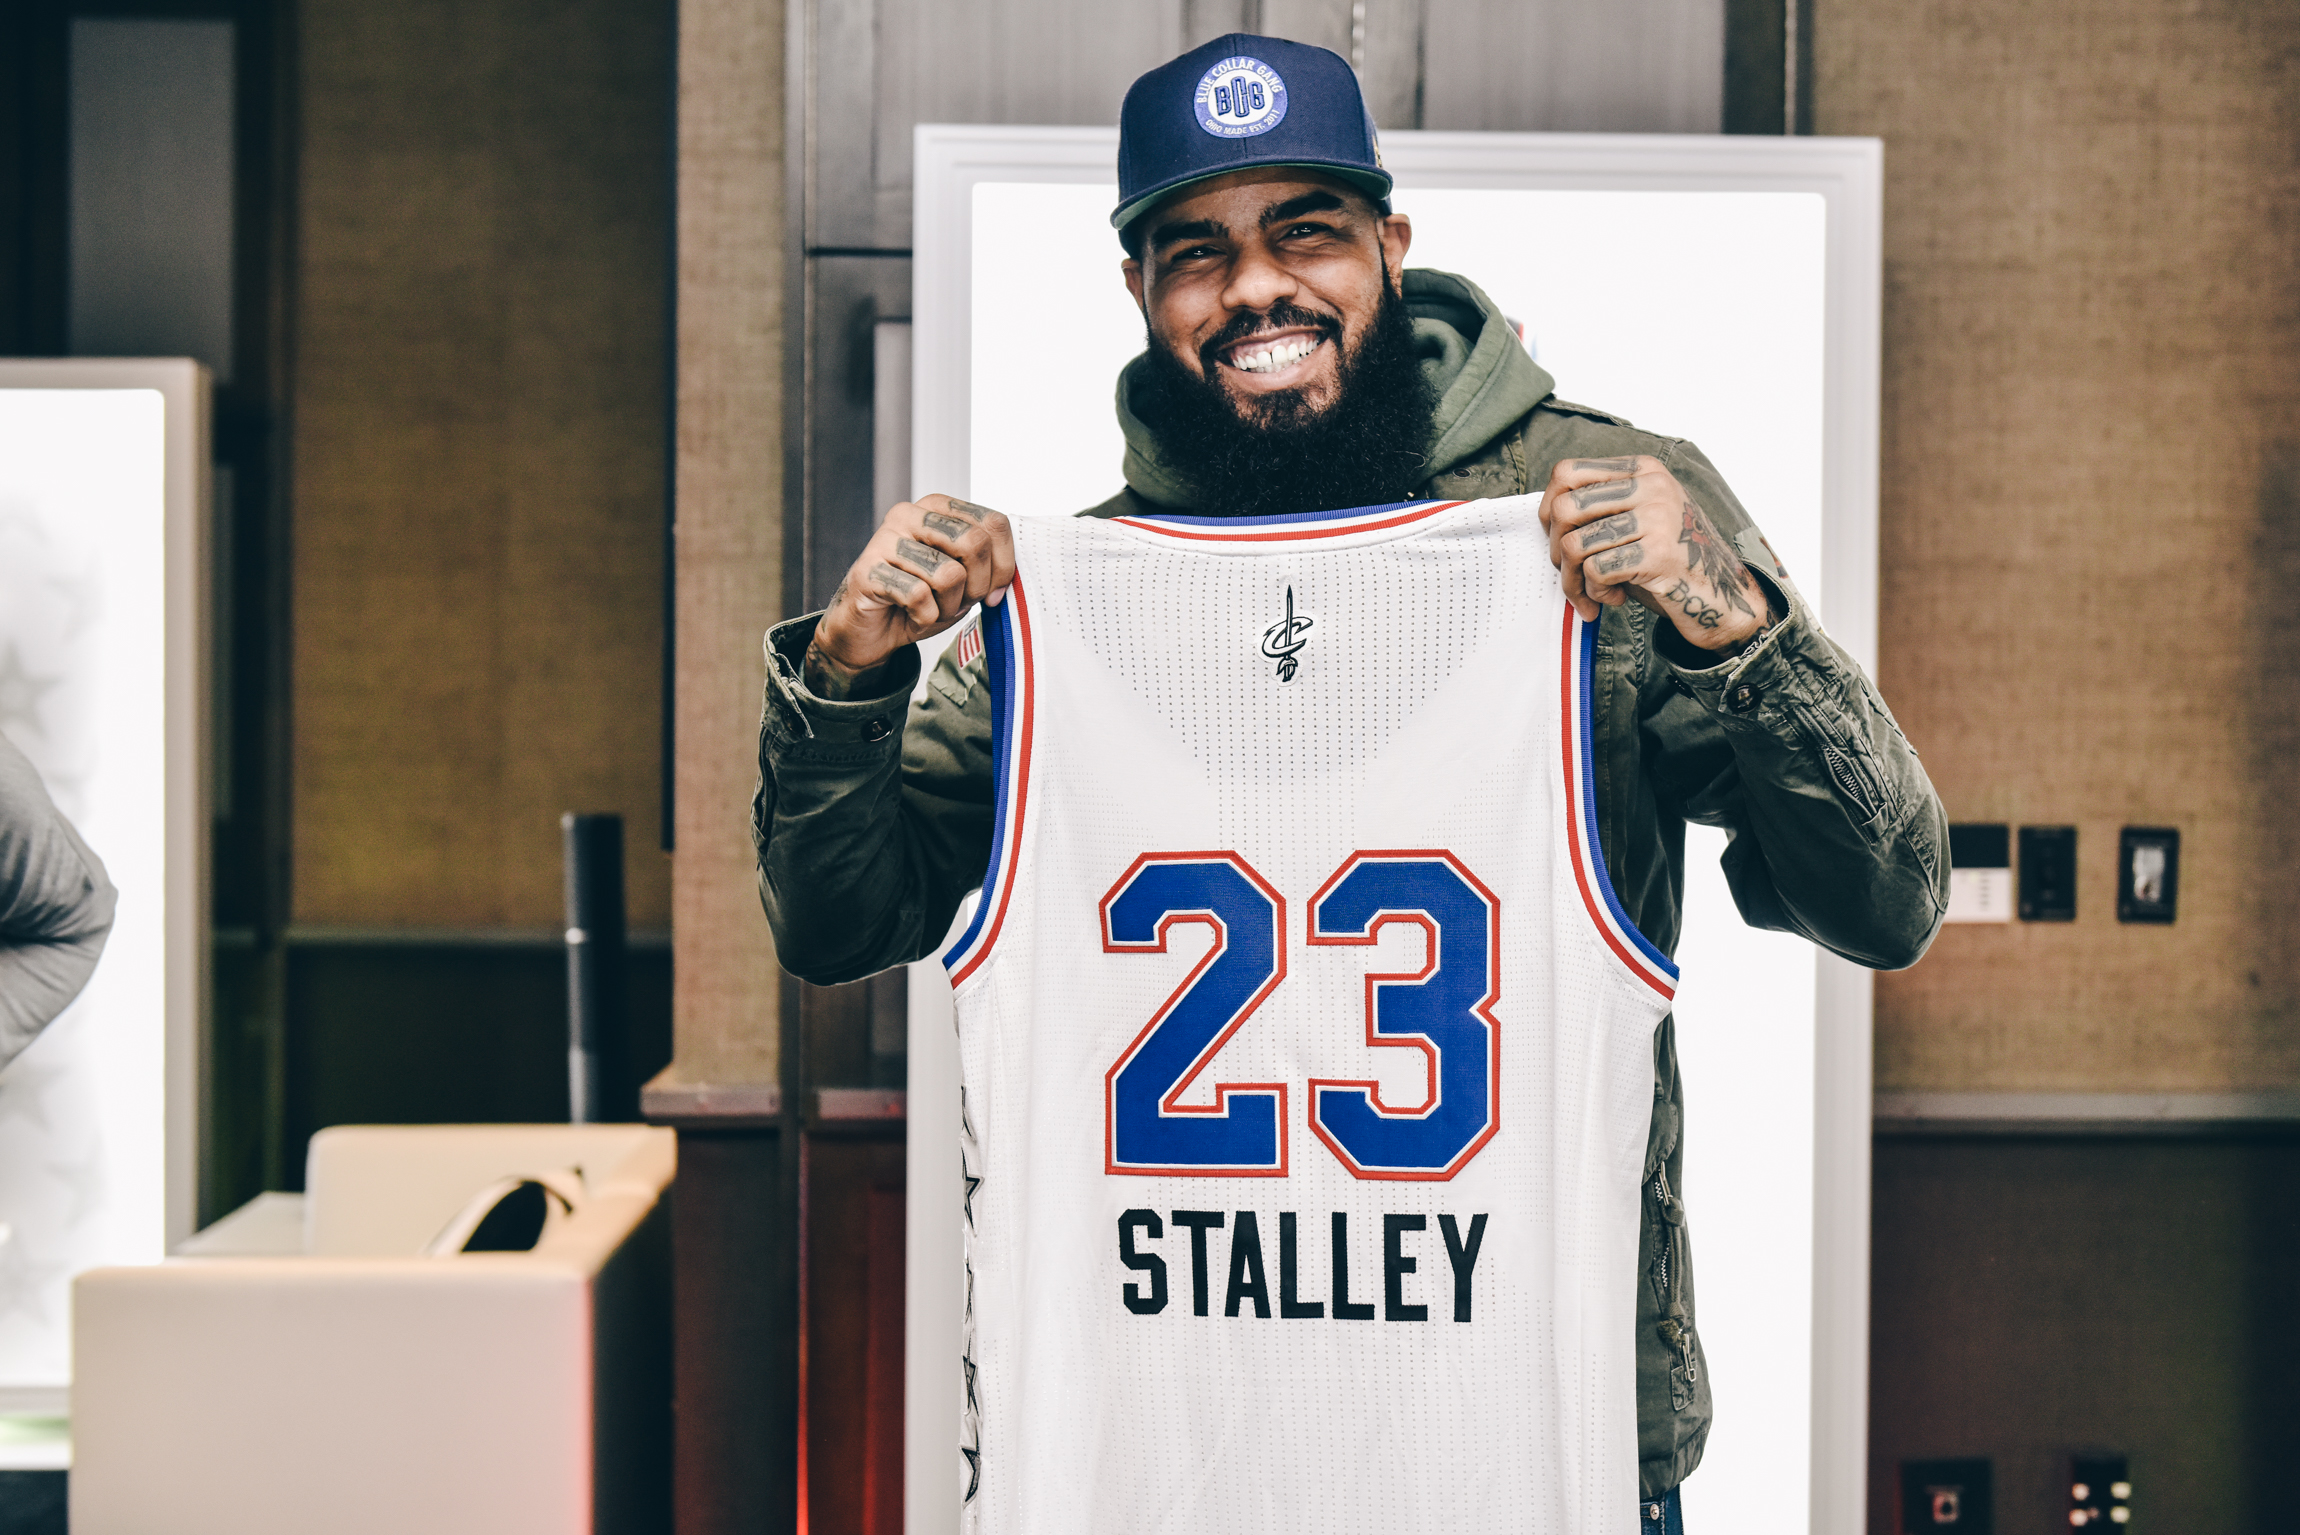 Stalley shows off his custom All Star jersey